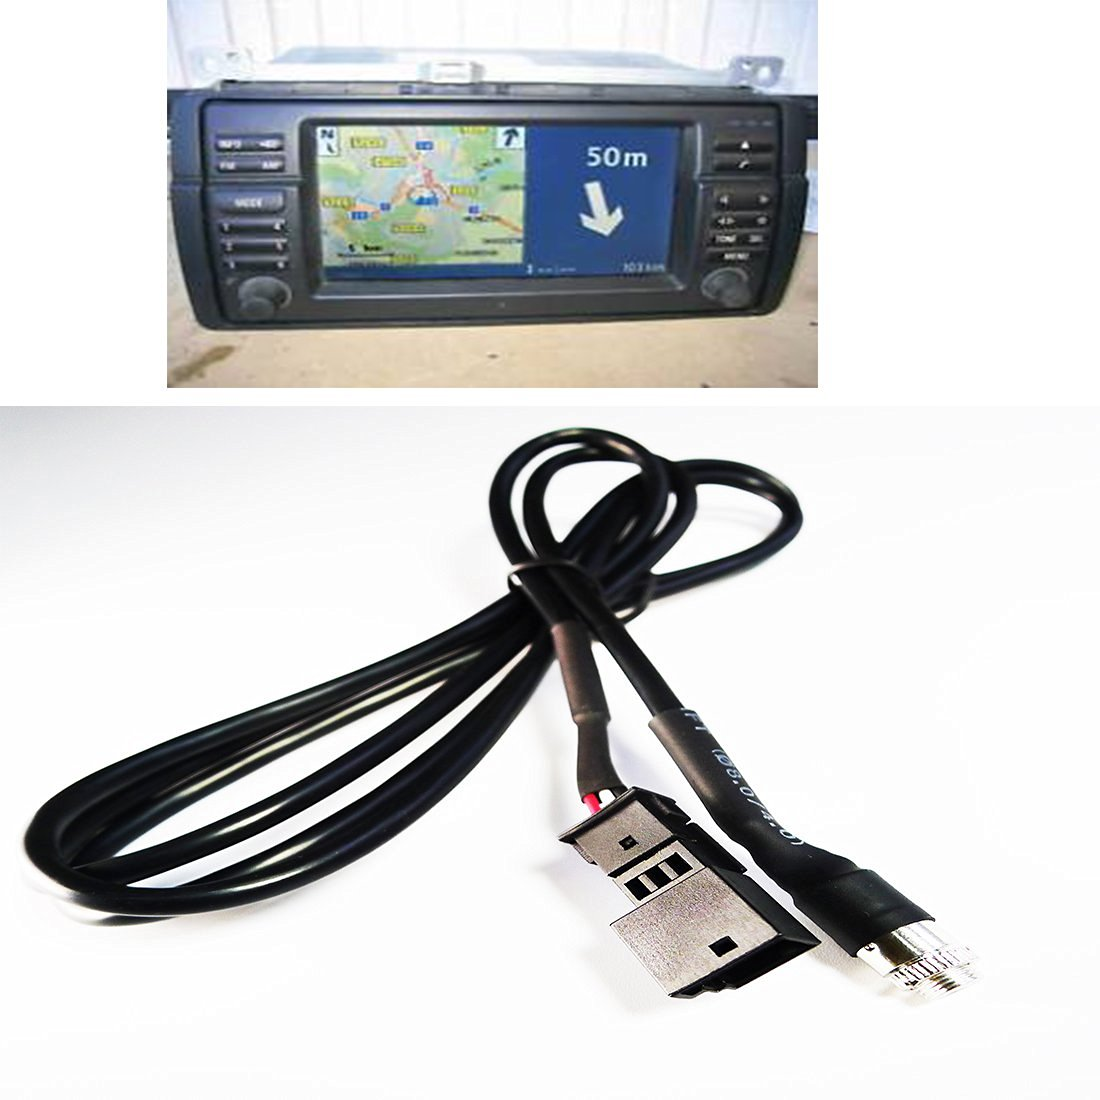 Cheap Bmw Aux Input Adapter Find Deals On E70 Wire Charging Harness Get Quotations Jeego Female Auxiliary Kit Iphone Ipod Mp3 Audio Cable For E39 E46